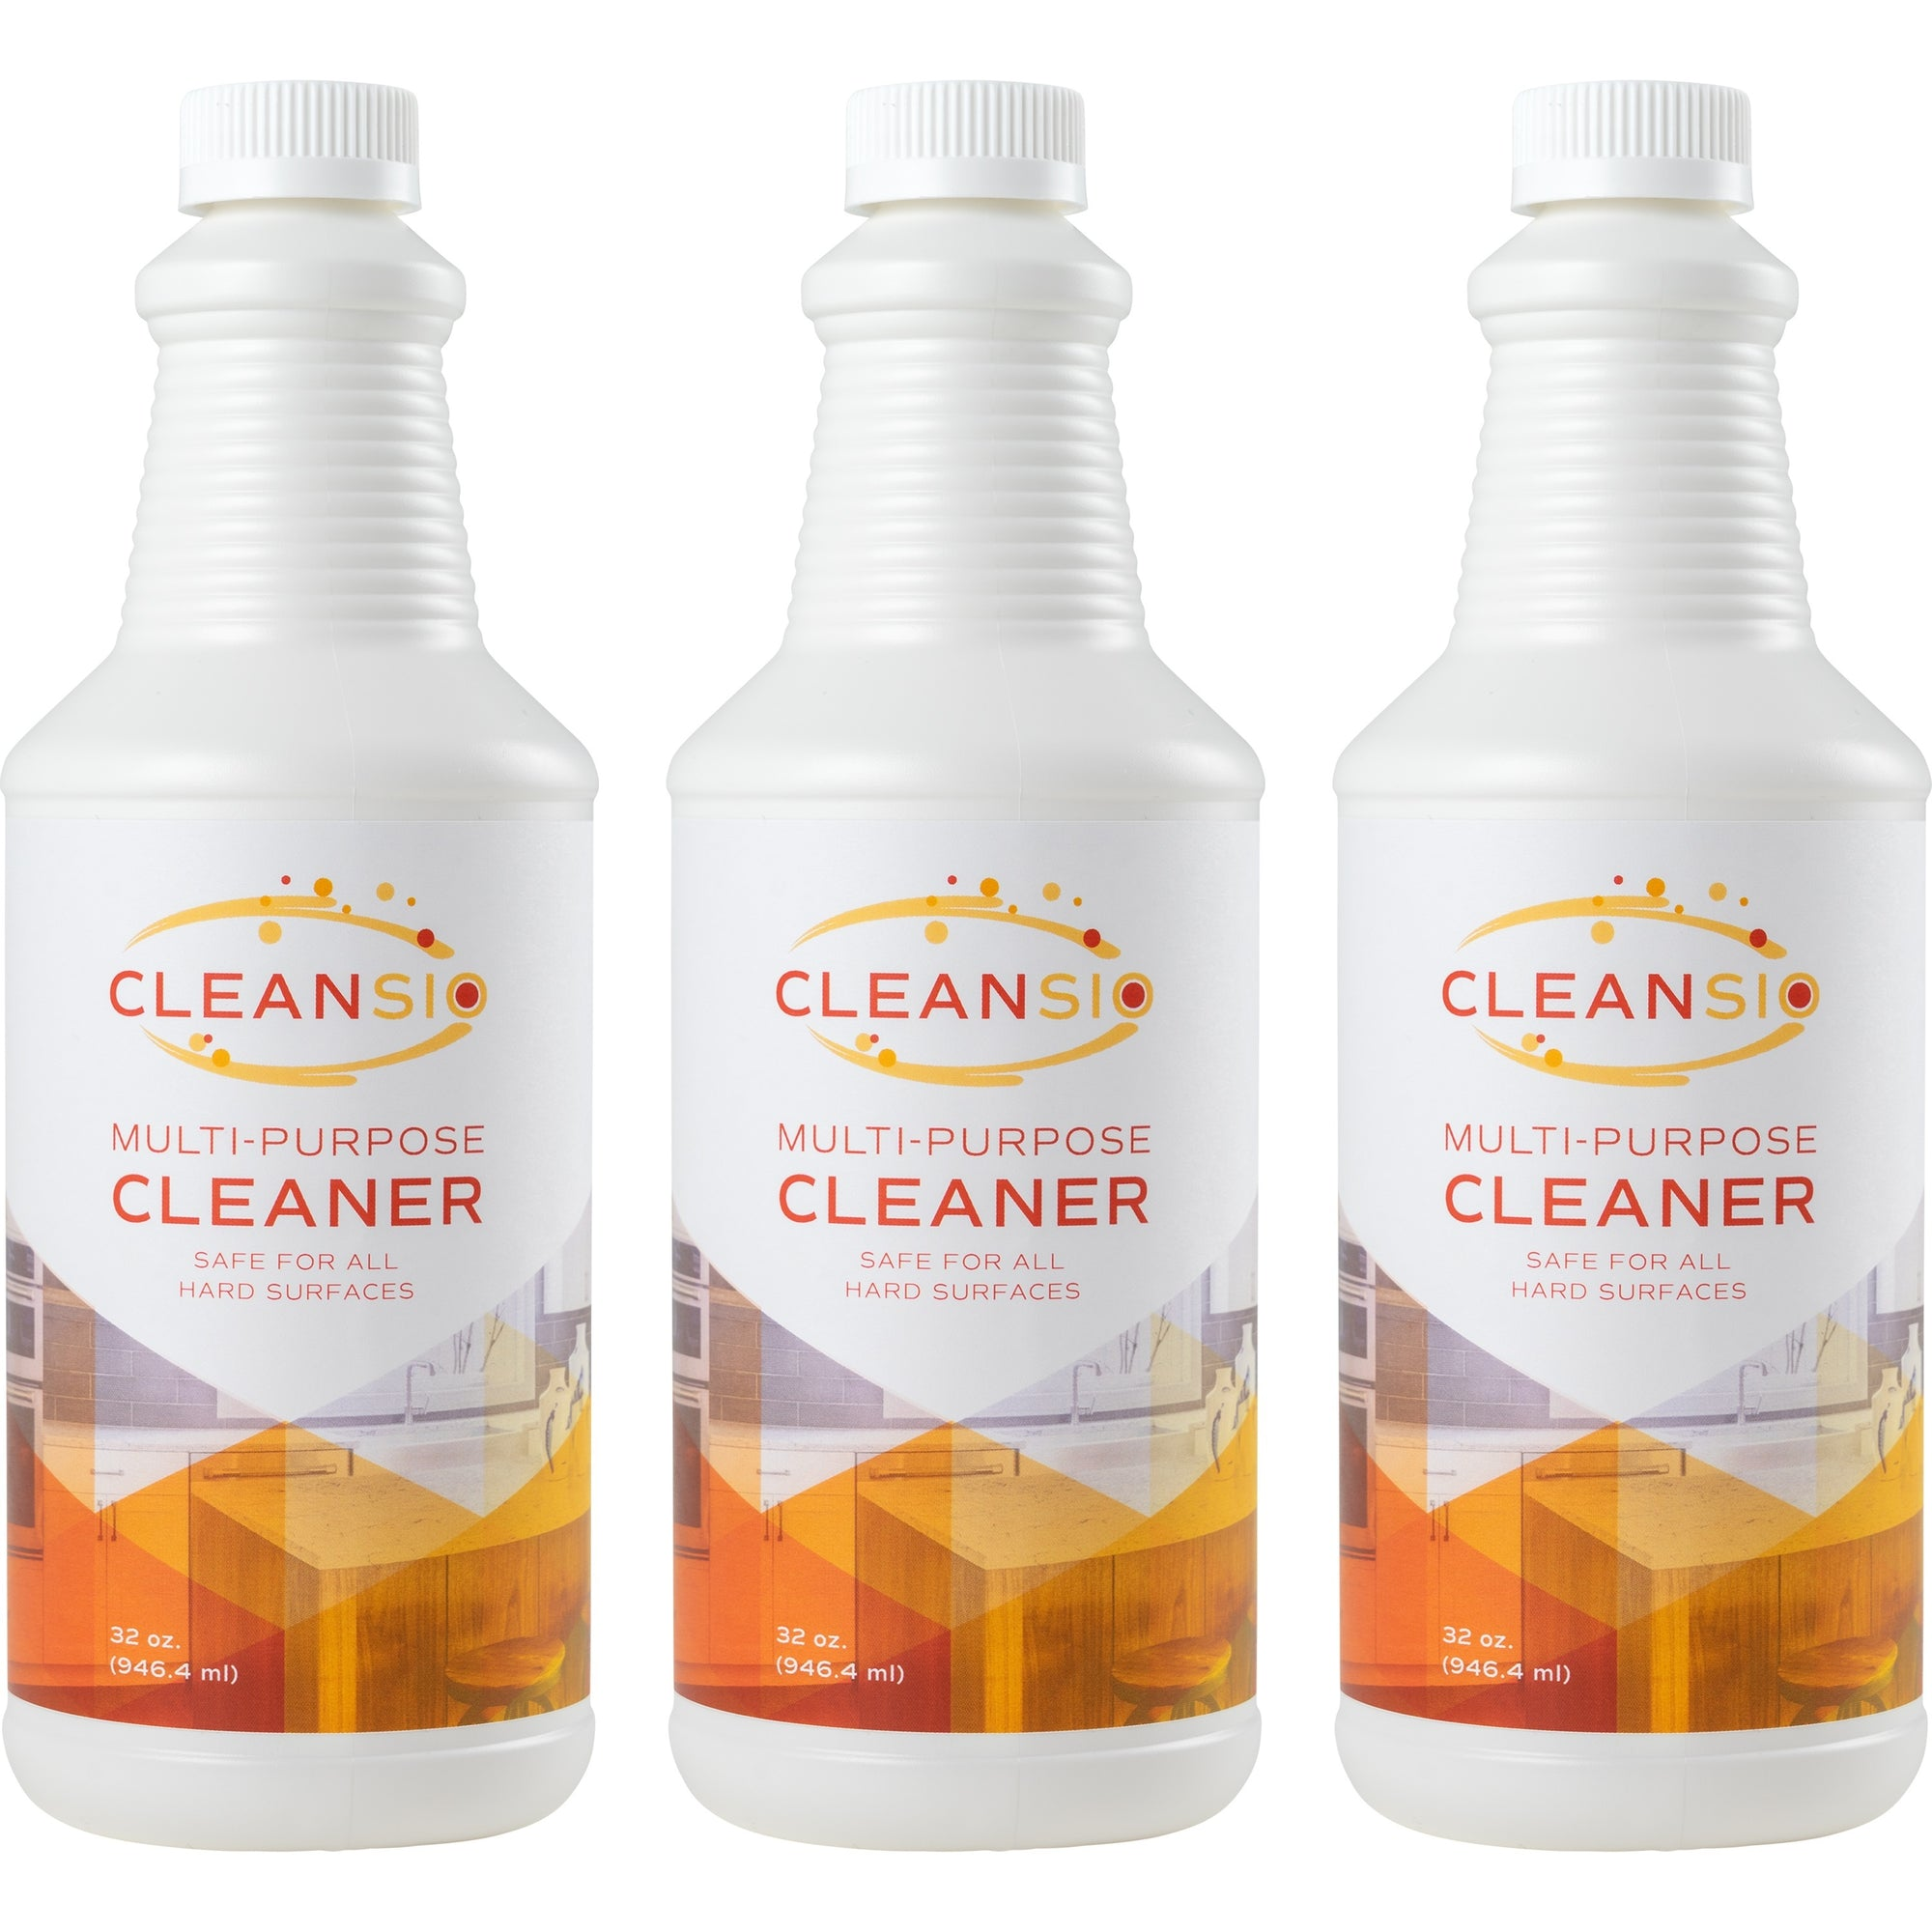 Cleansio Multi-Purpose Cleaner 3 Pack – Fragrance Free, Cleans Most Hard Surfaces, 32oz - 3 Pack